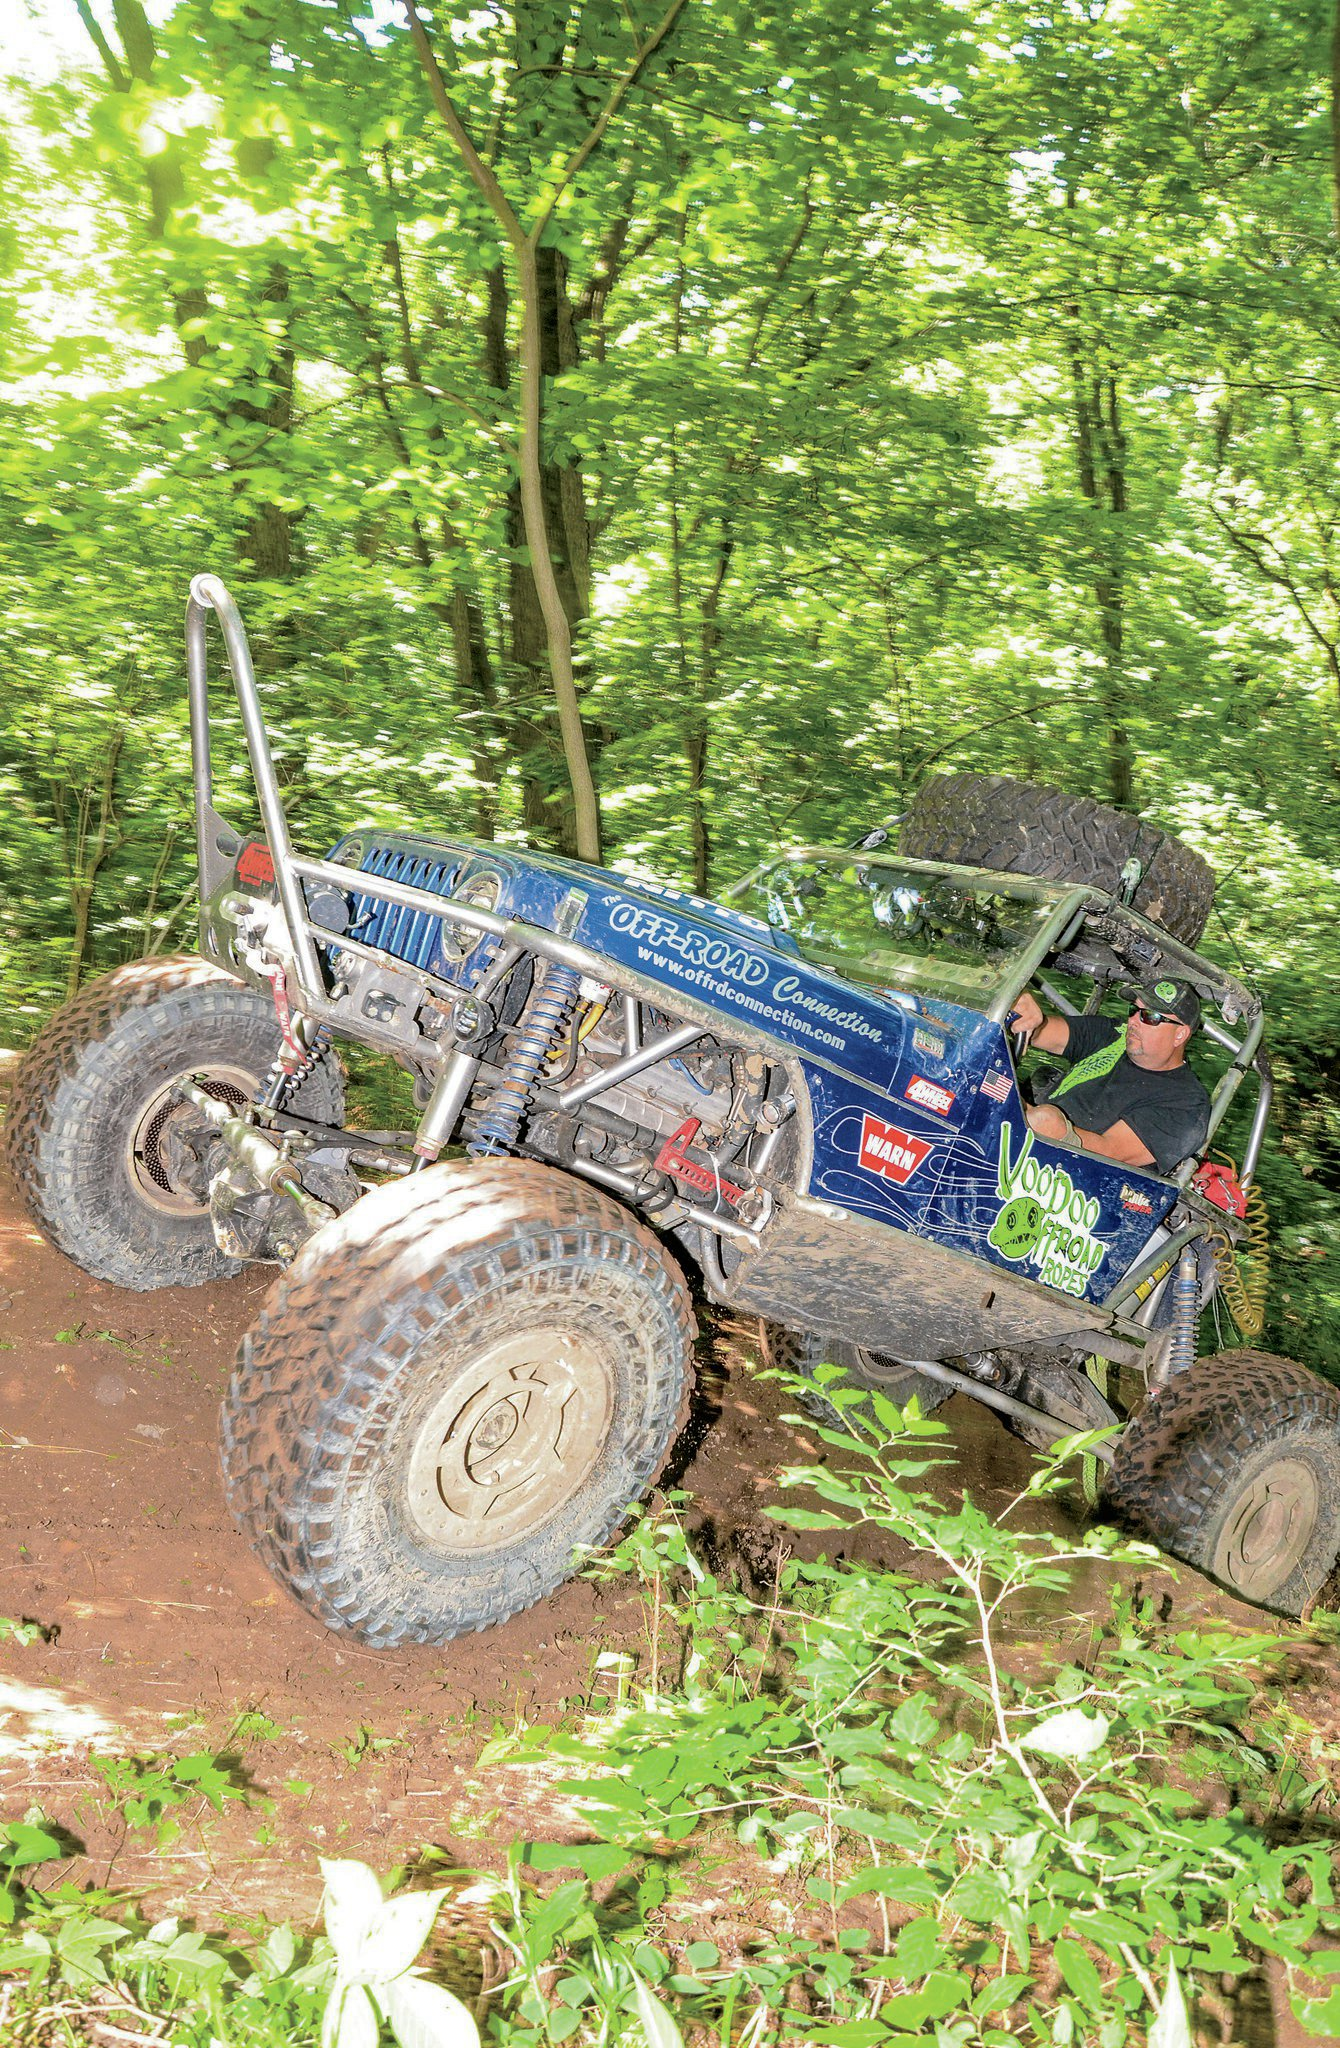 Keith Bailey shows how it's done in his Jeep based Buggy. The buggy runs a Hemi for power. Last year Tom Boyd blew Bailey's rear ring-and-pinion on one particularly gnarly climb. Since then the Buggy's high-pinion Dana 60 rear axle has been replaced with a shaved 14-bolt axle.